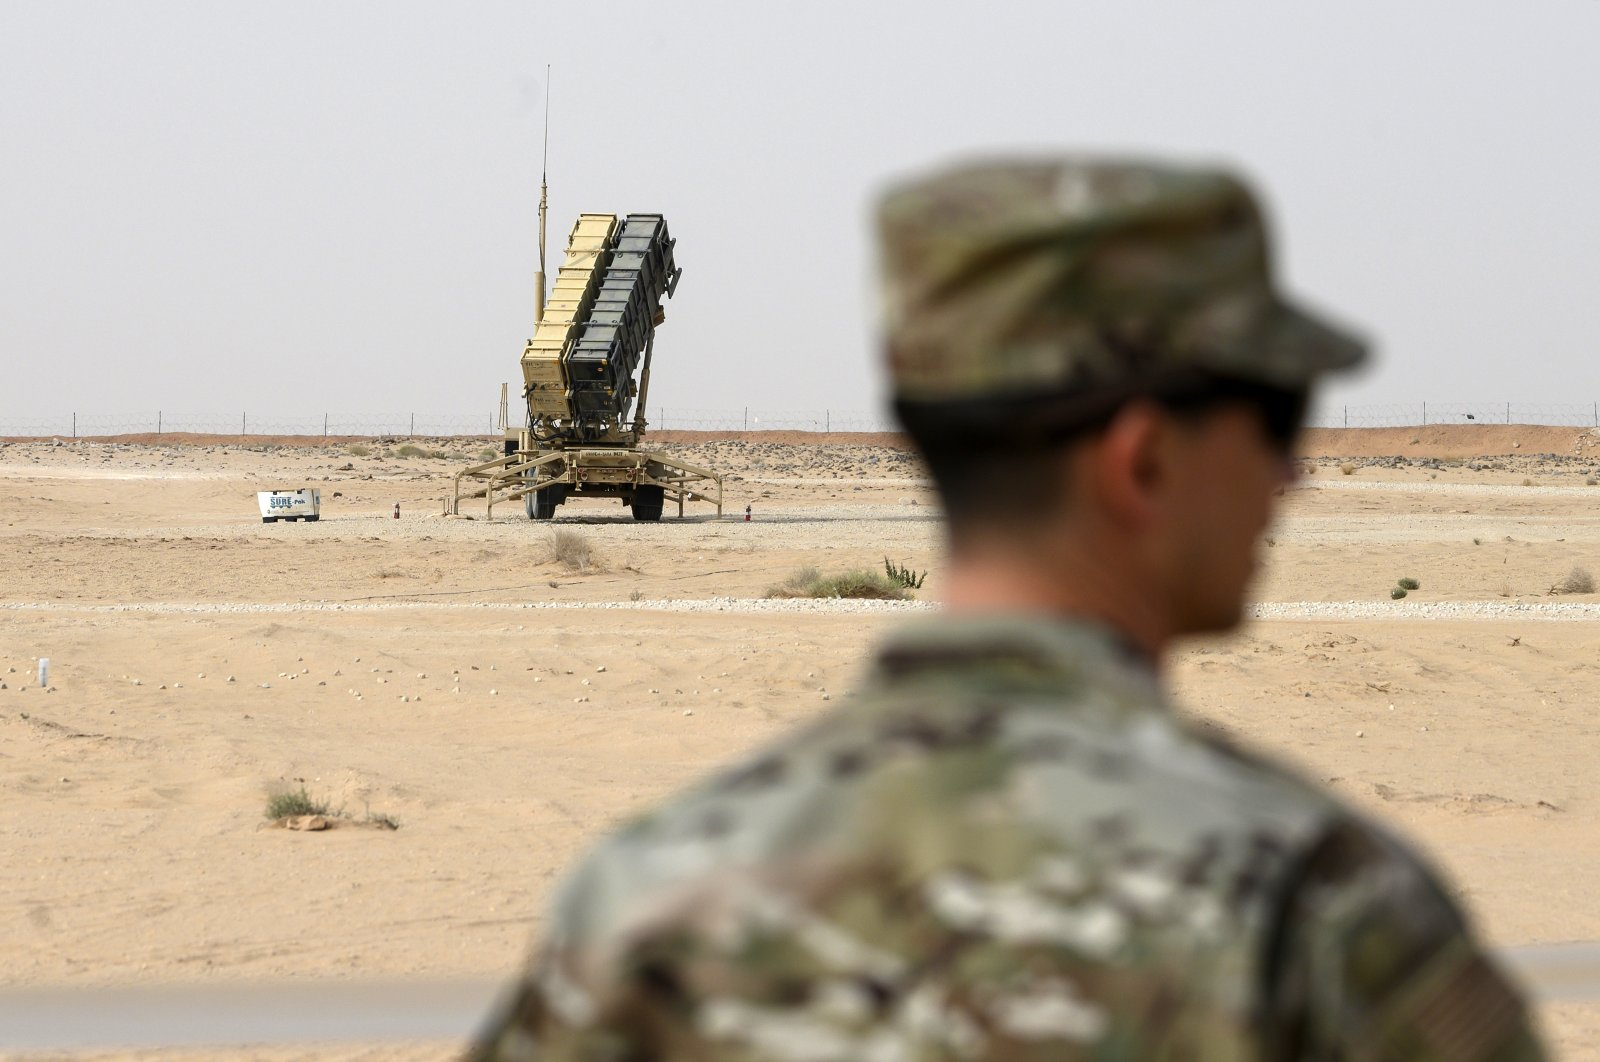 A member of the U.S. Air Force stands near a Patriot missile battery at Prince Sultan Air Base in Saudi Arabia, Feb. 20, 2020. (Pool via AP)